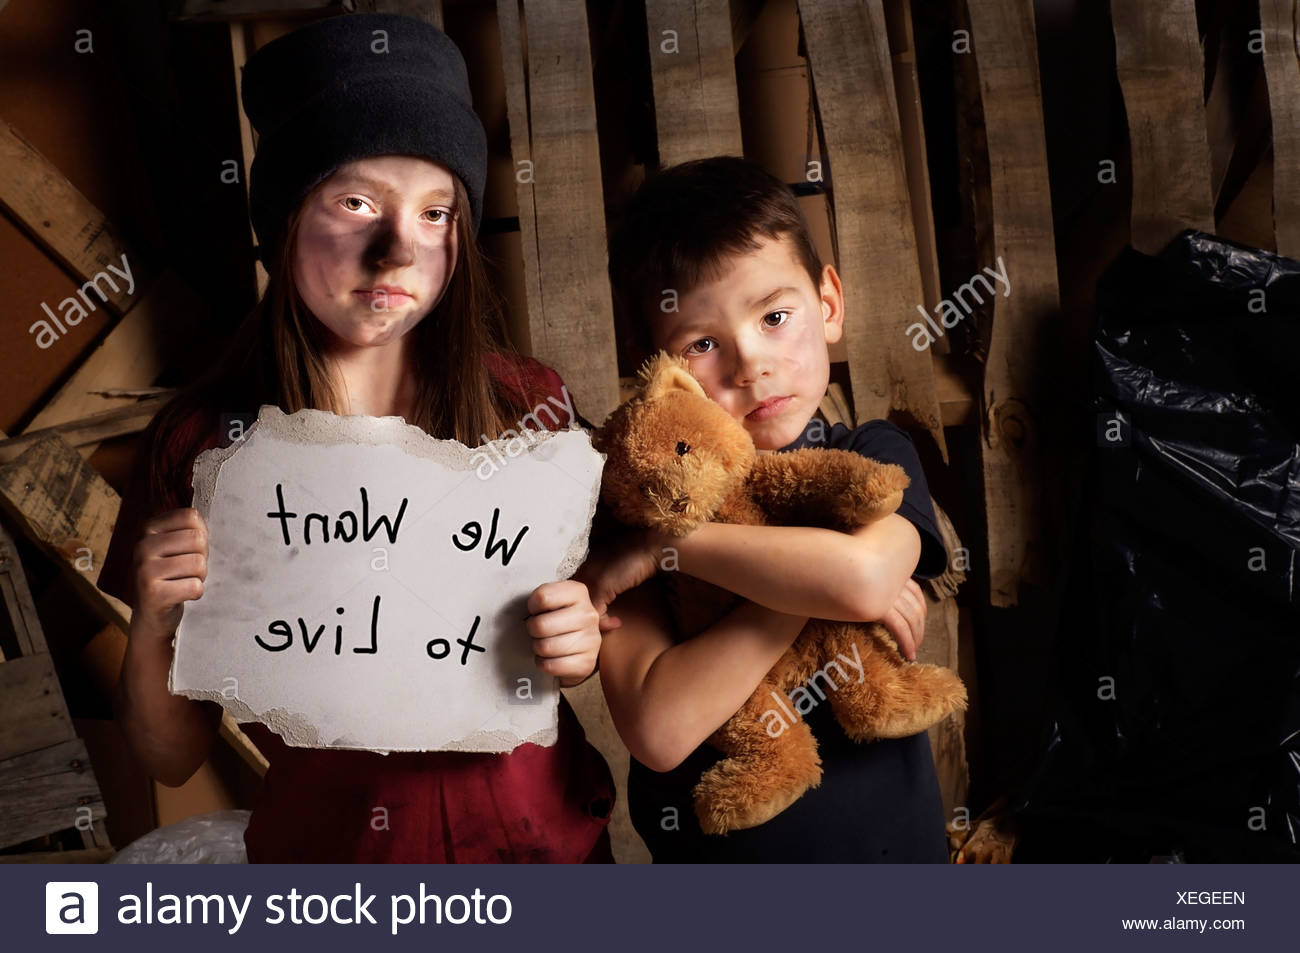 Impoverished boy and girl - Stock Image